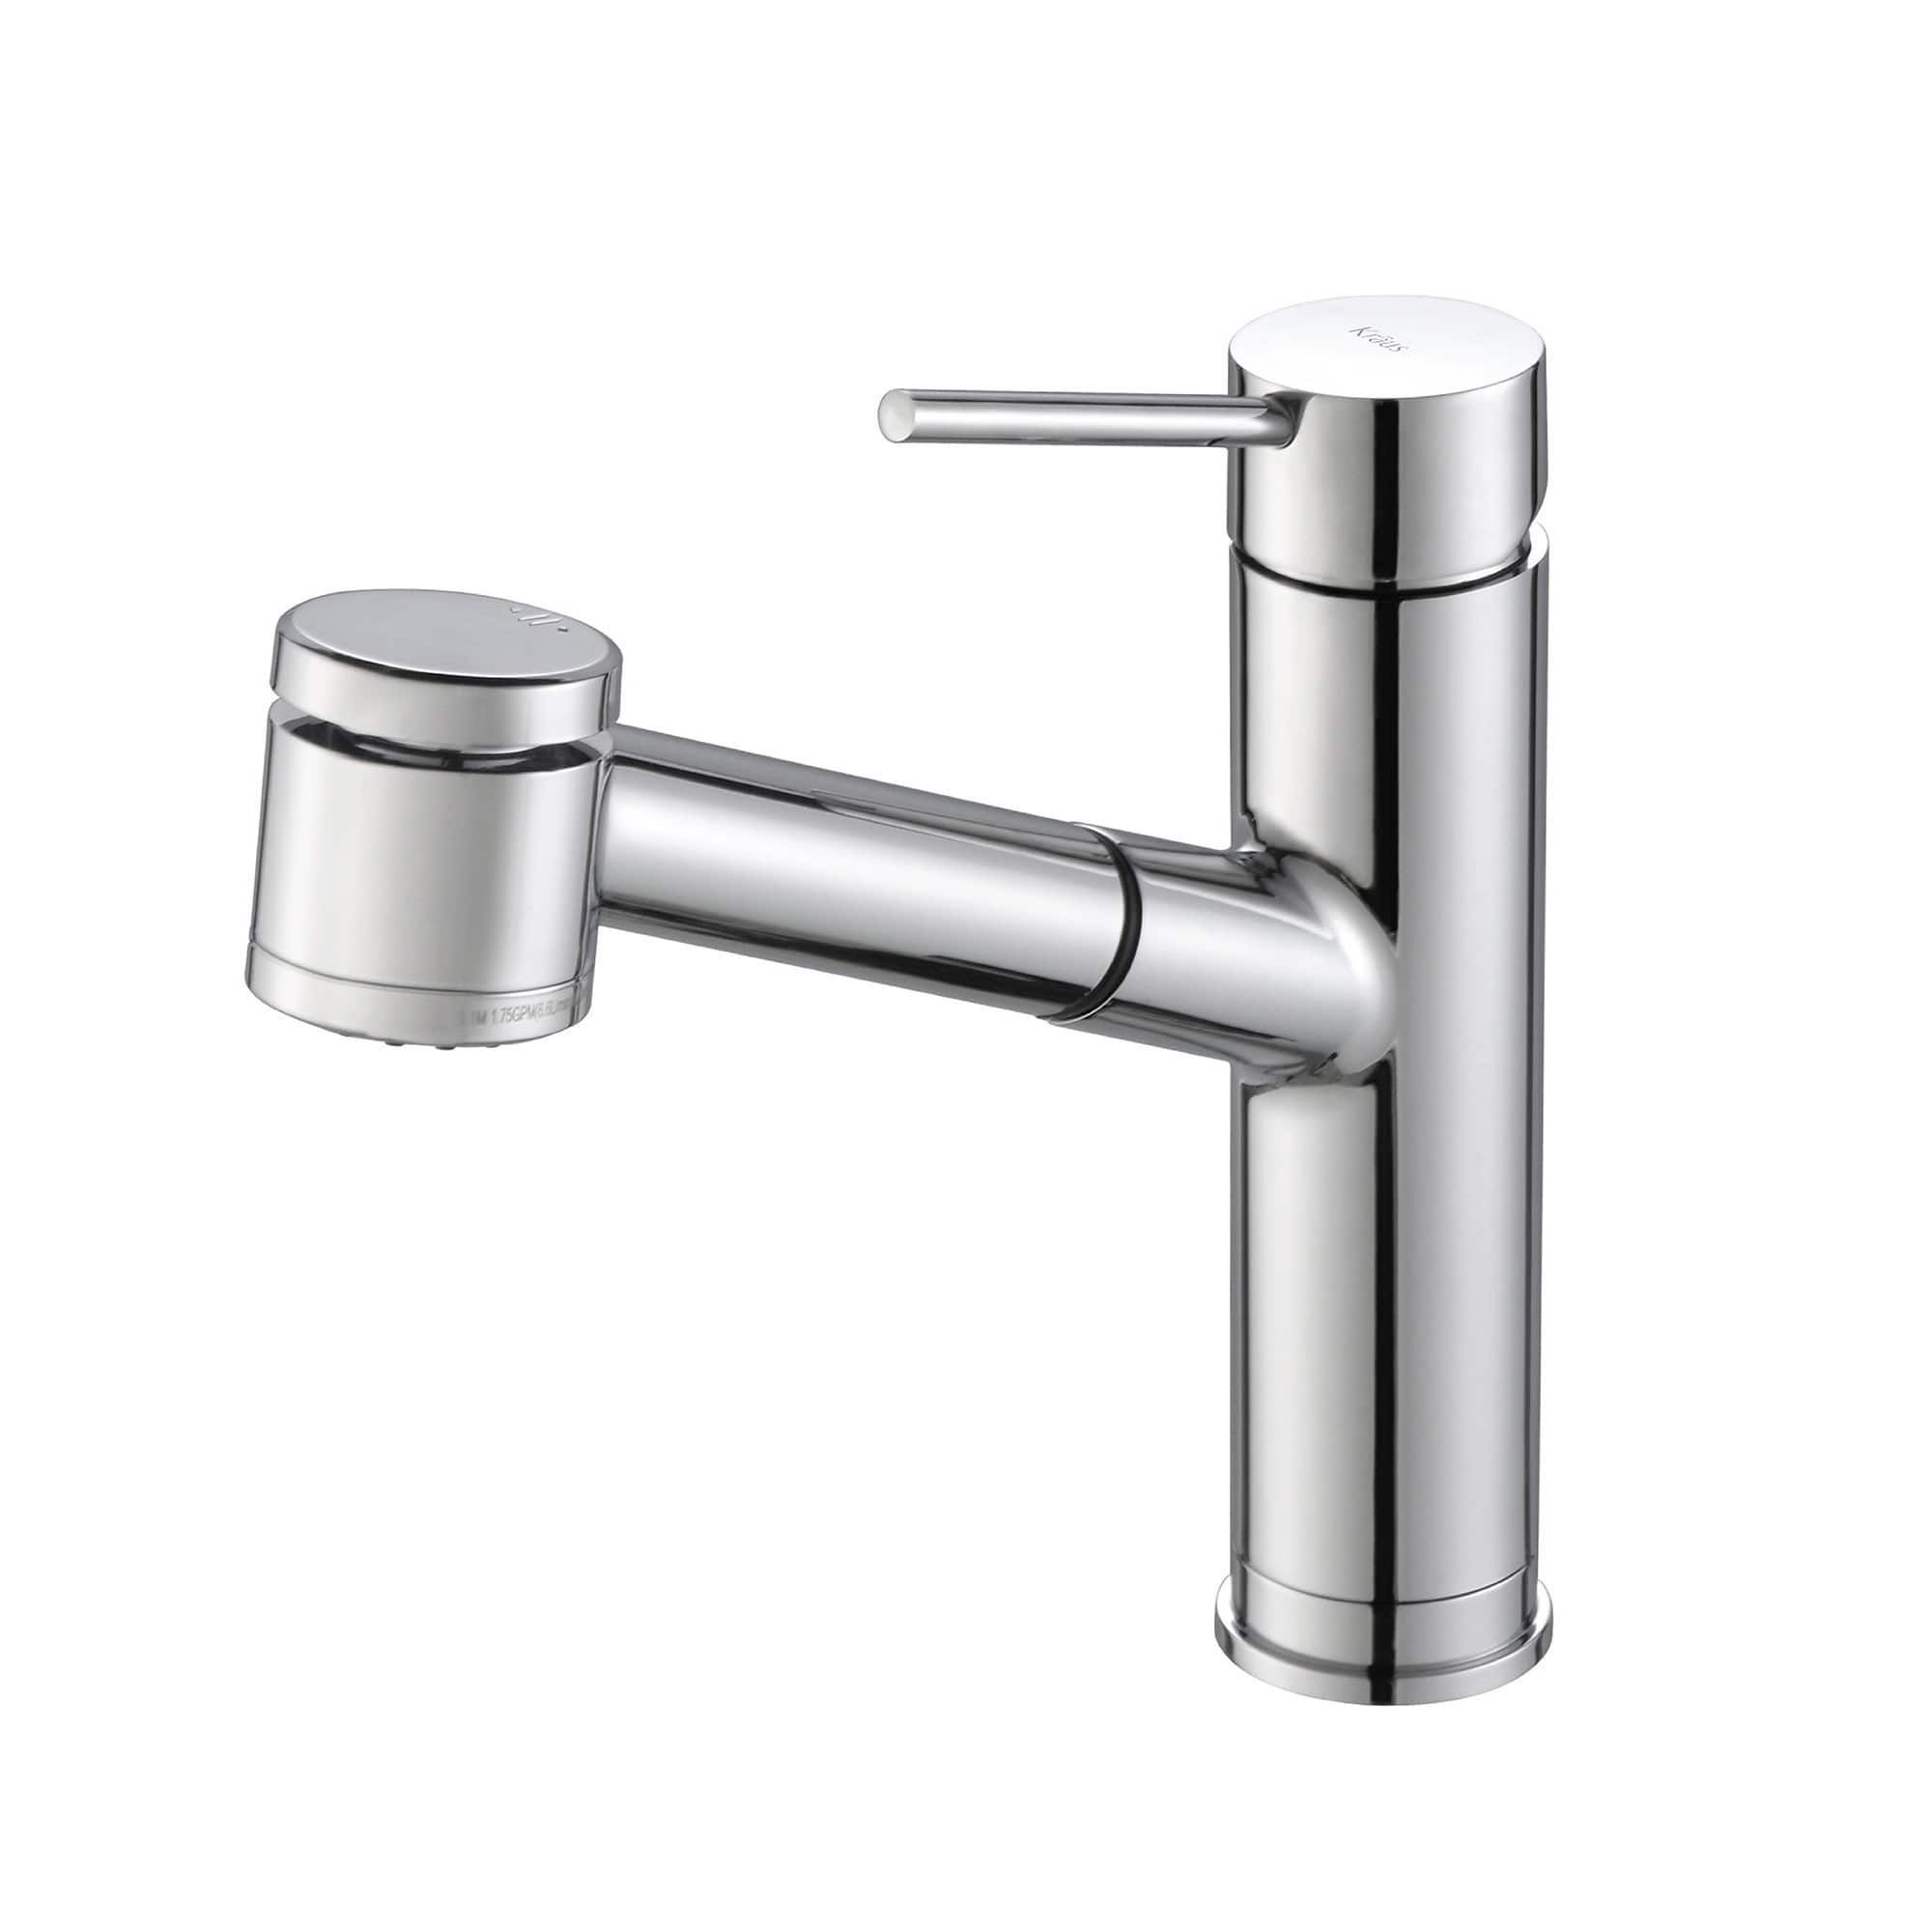 Kraus Oletto Singlehandle Kitchen Faucet With Pull Out Dual Pleasing Single Handle Kitchen Faucet Review